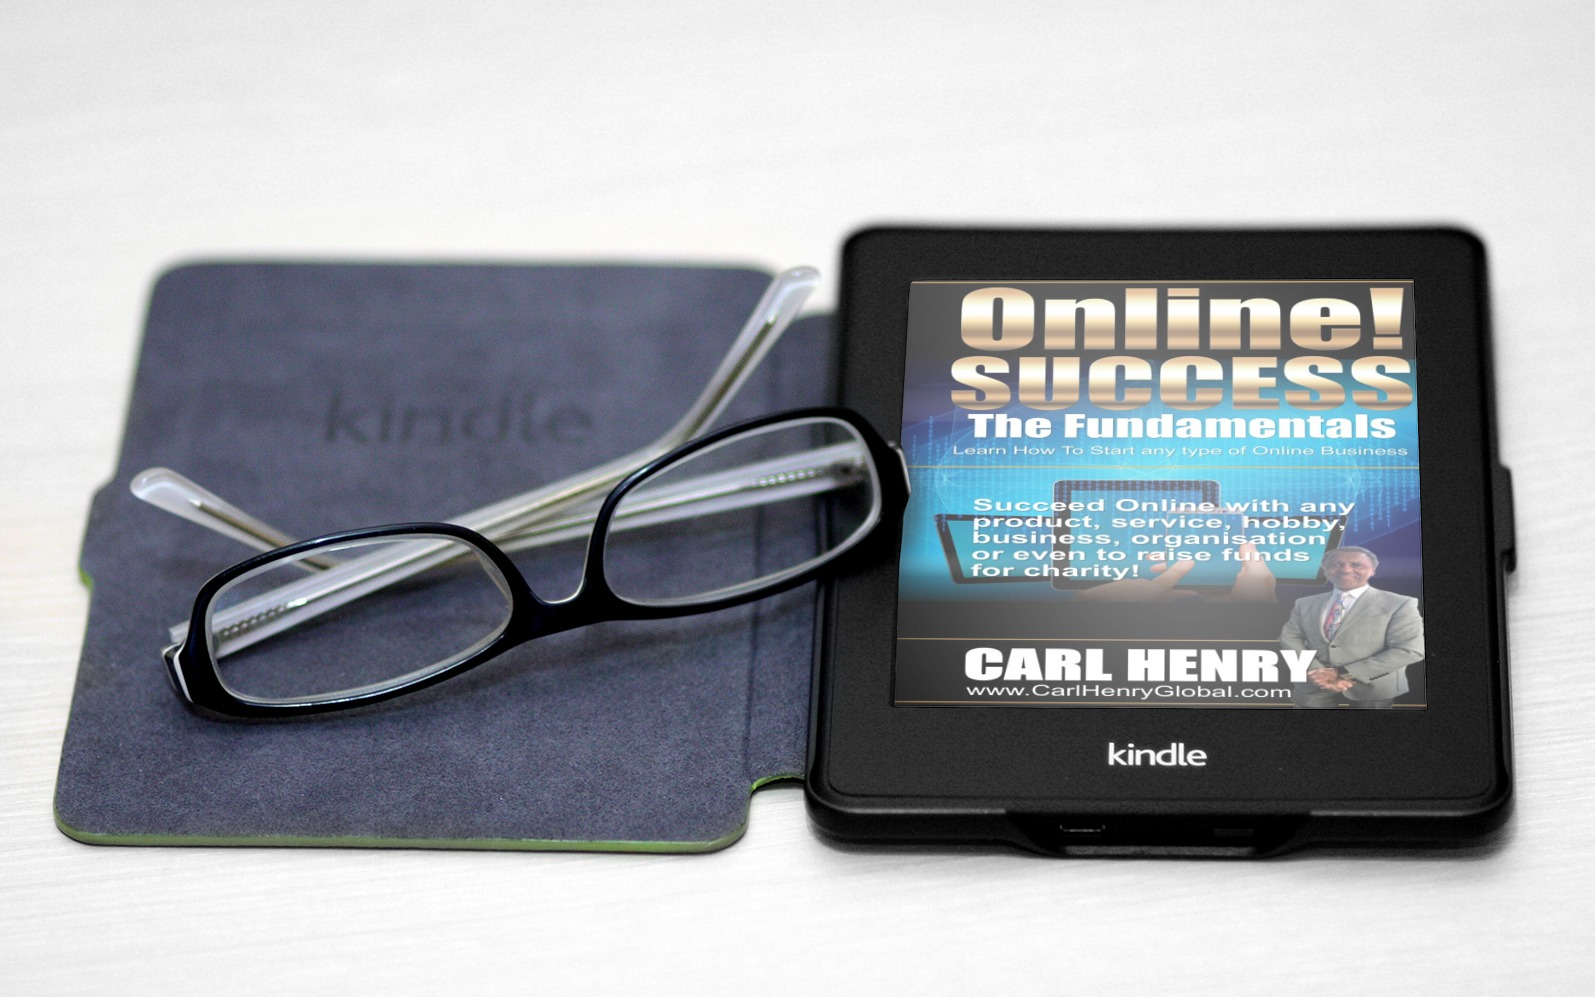 Carl-Henry-ONLINE-SUCCESS24.jpg